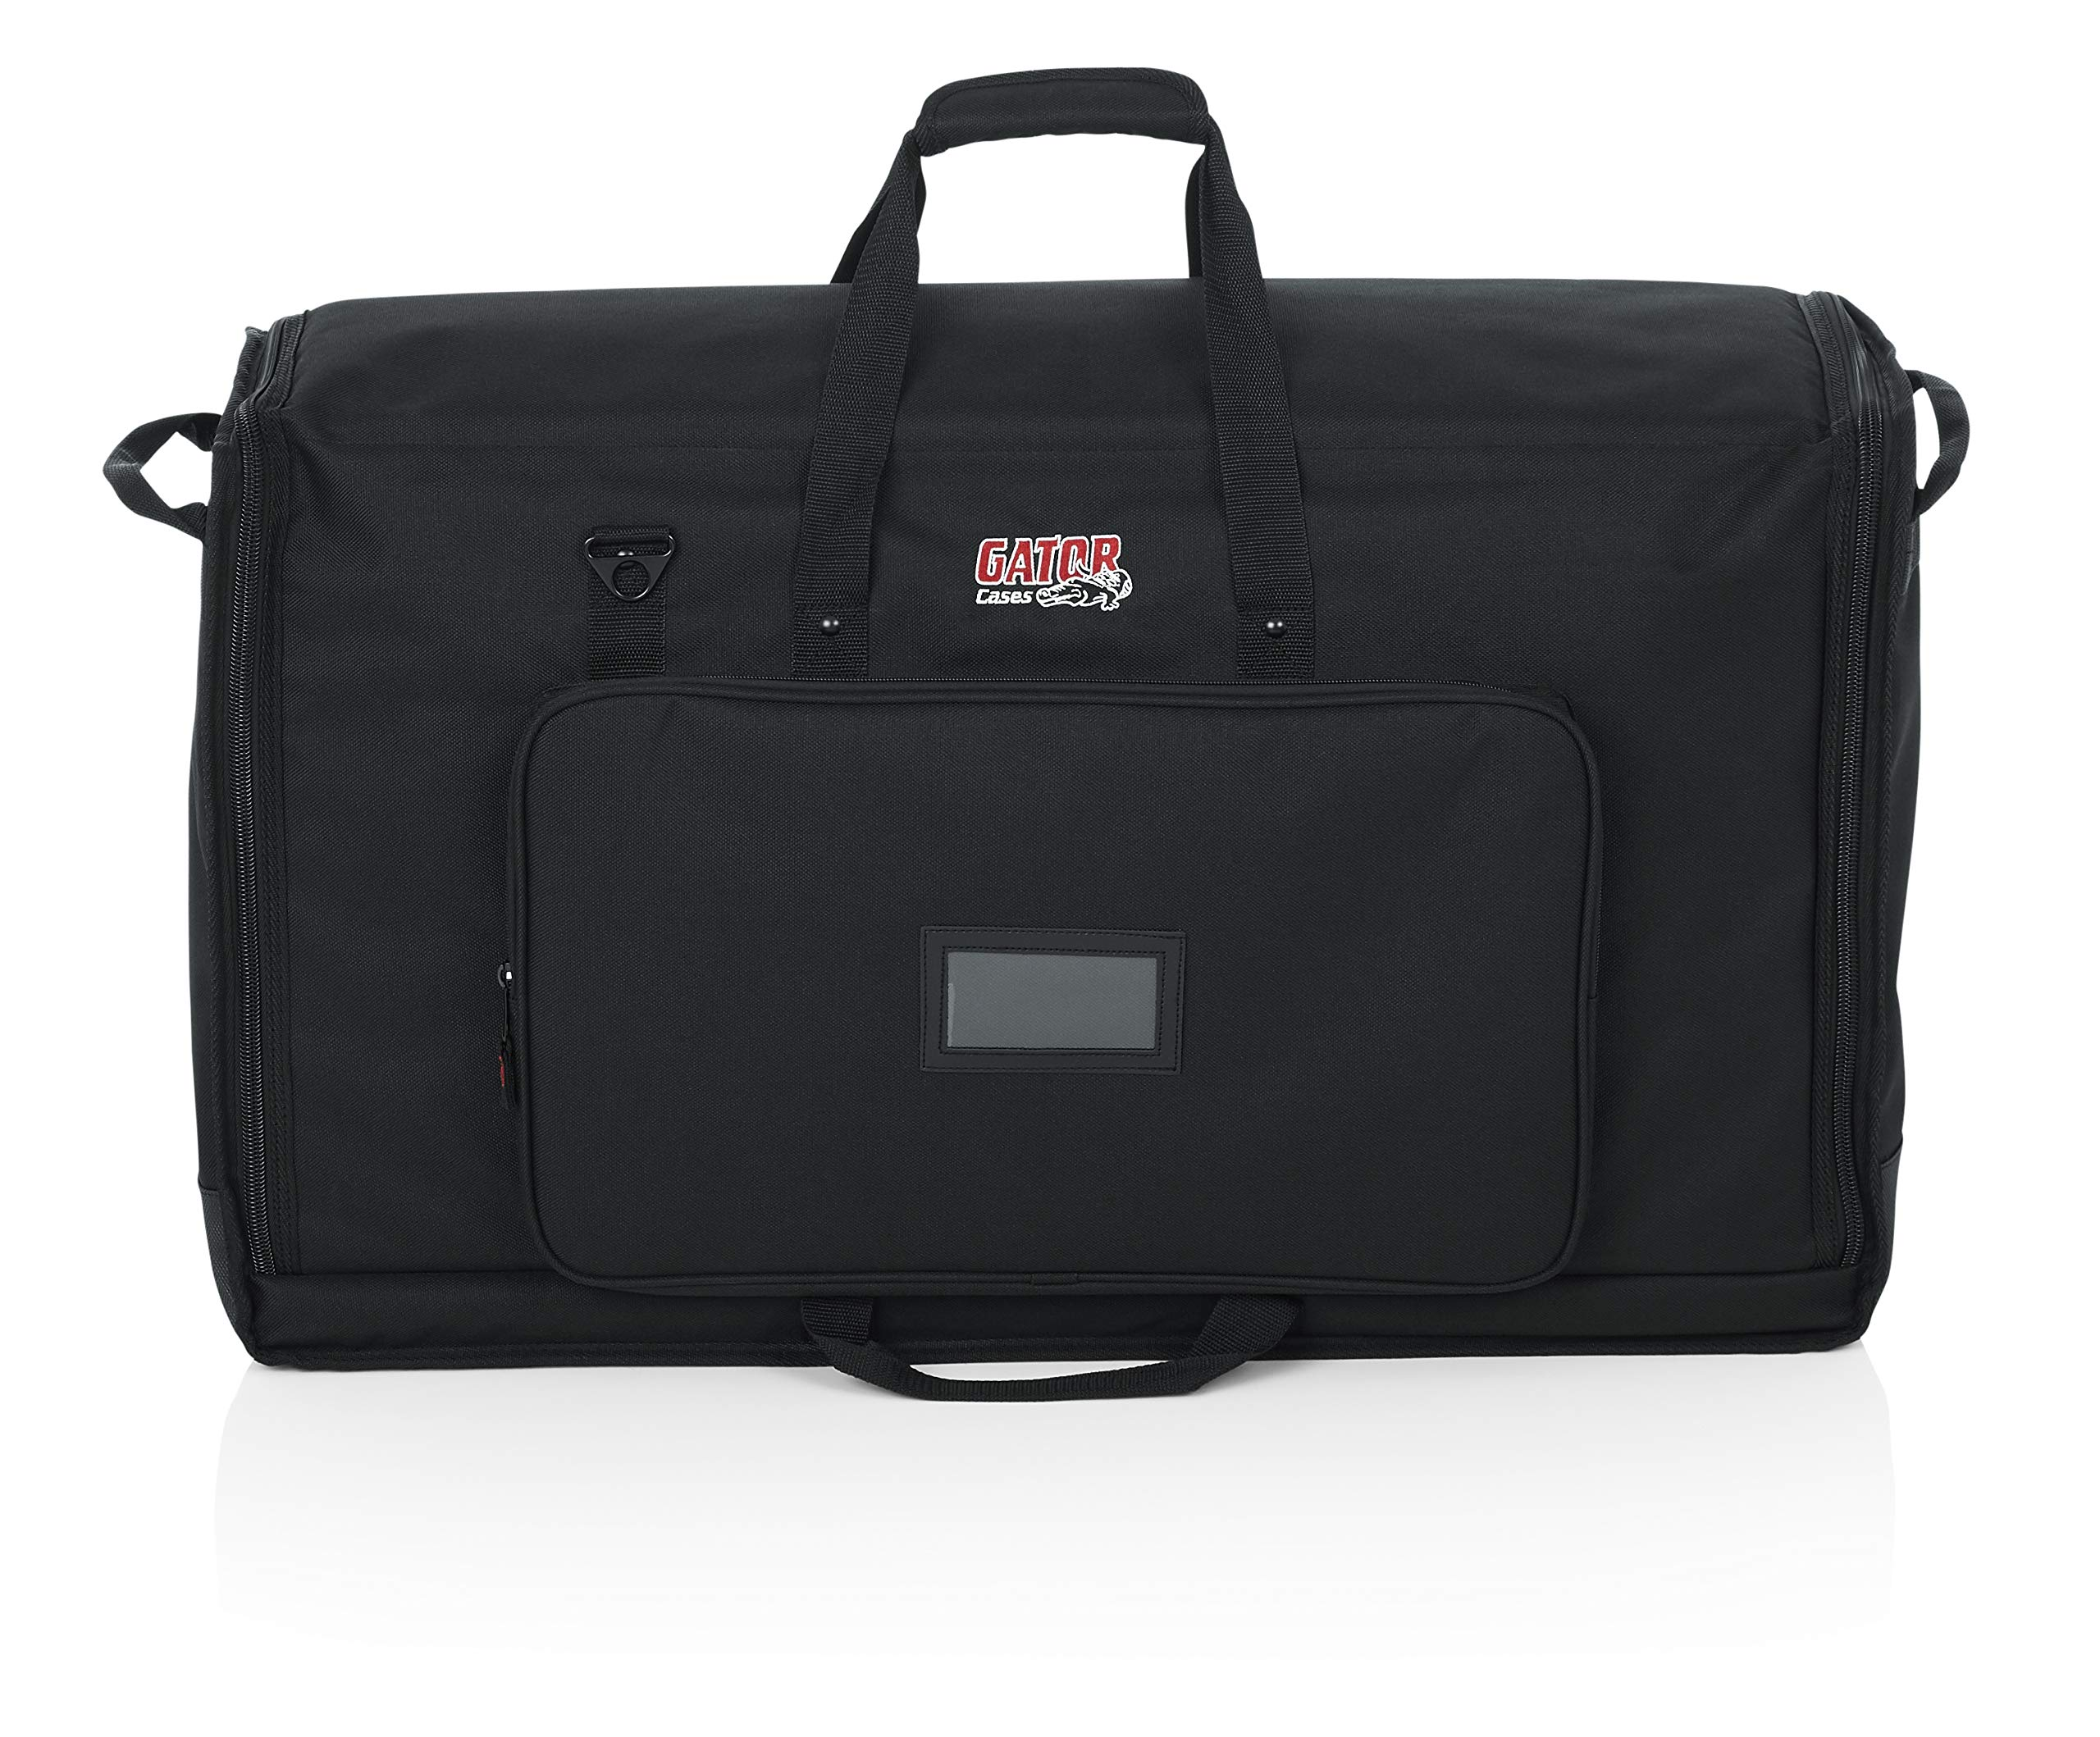 Gator Cases Padded Nylon Dual Carry Tote Bag for Transporting (2) LCD Screens, Monitors and TVs Between 27'' - 32''; (G-LCD-TOTE-MDX2) by Gator (Image #2)